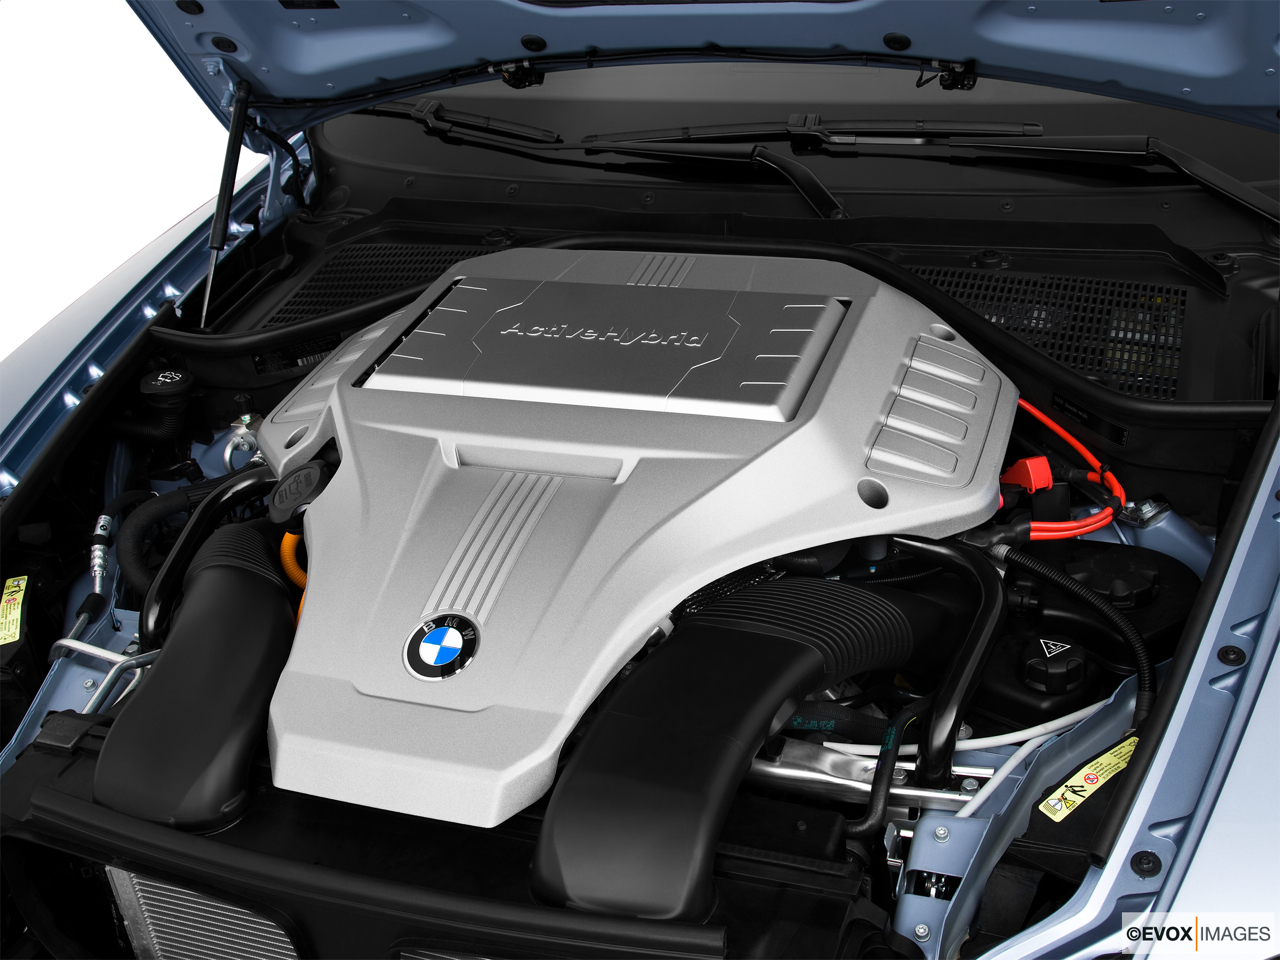 2010 BMW X6 Hybrid Base Engine.